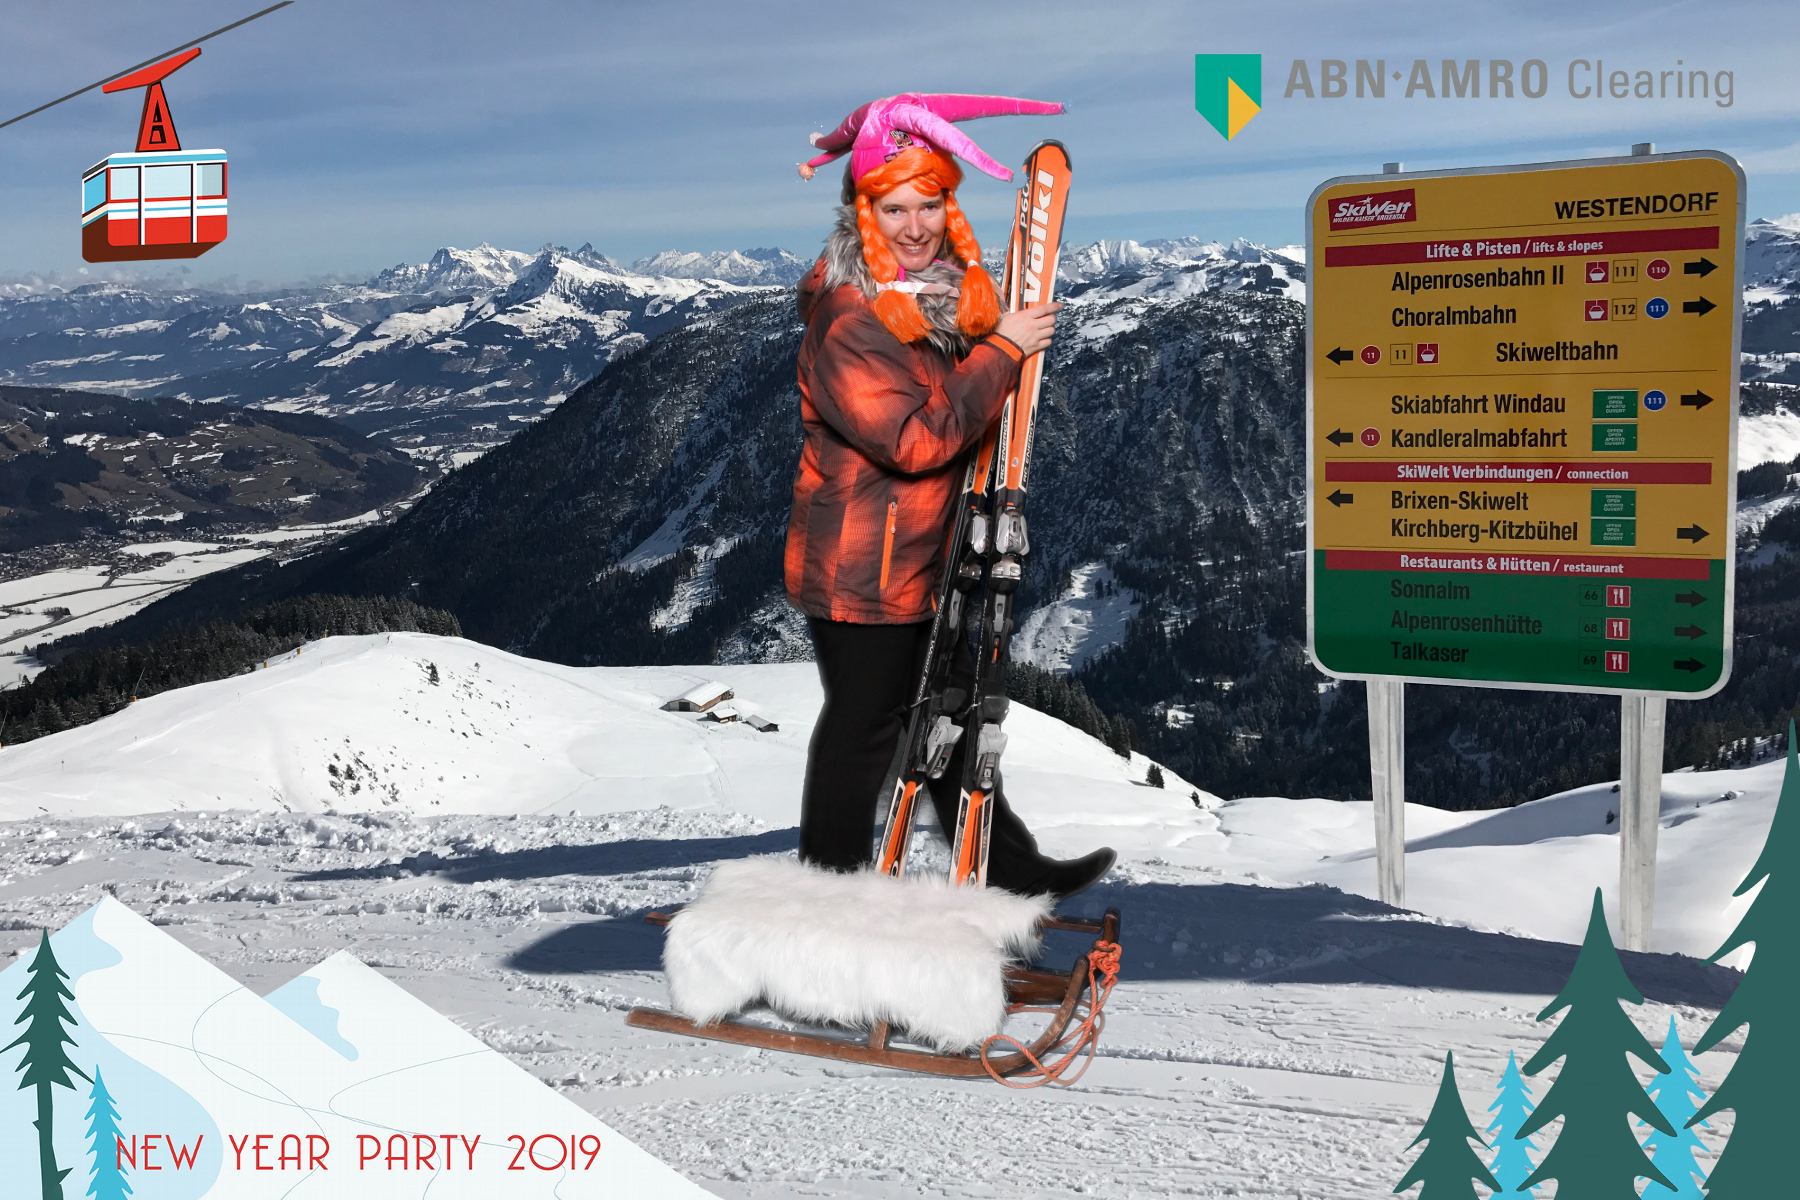 Apres-ski party photobooth